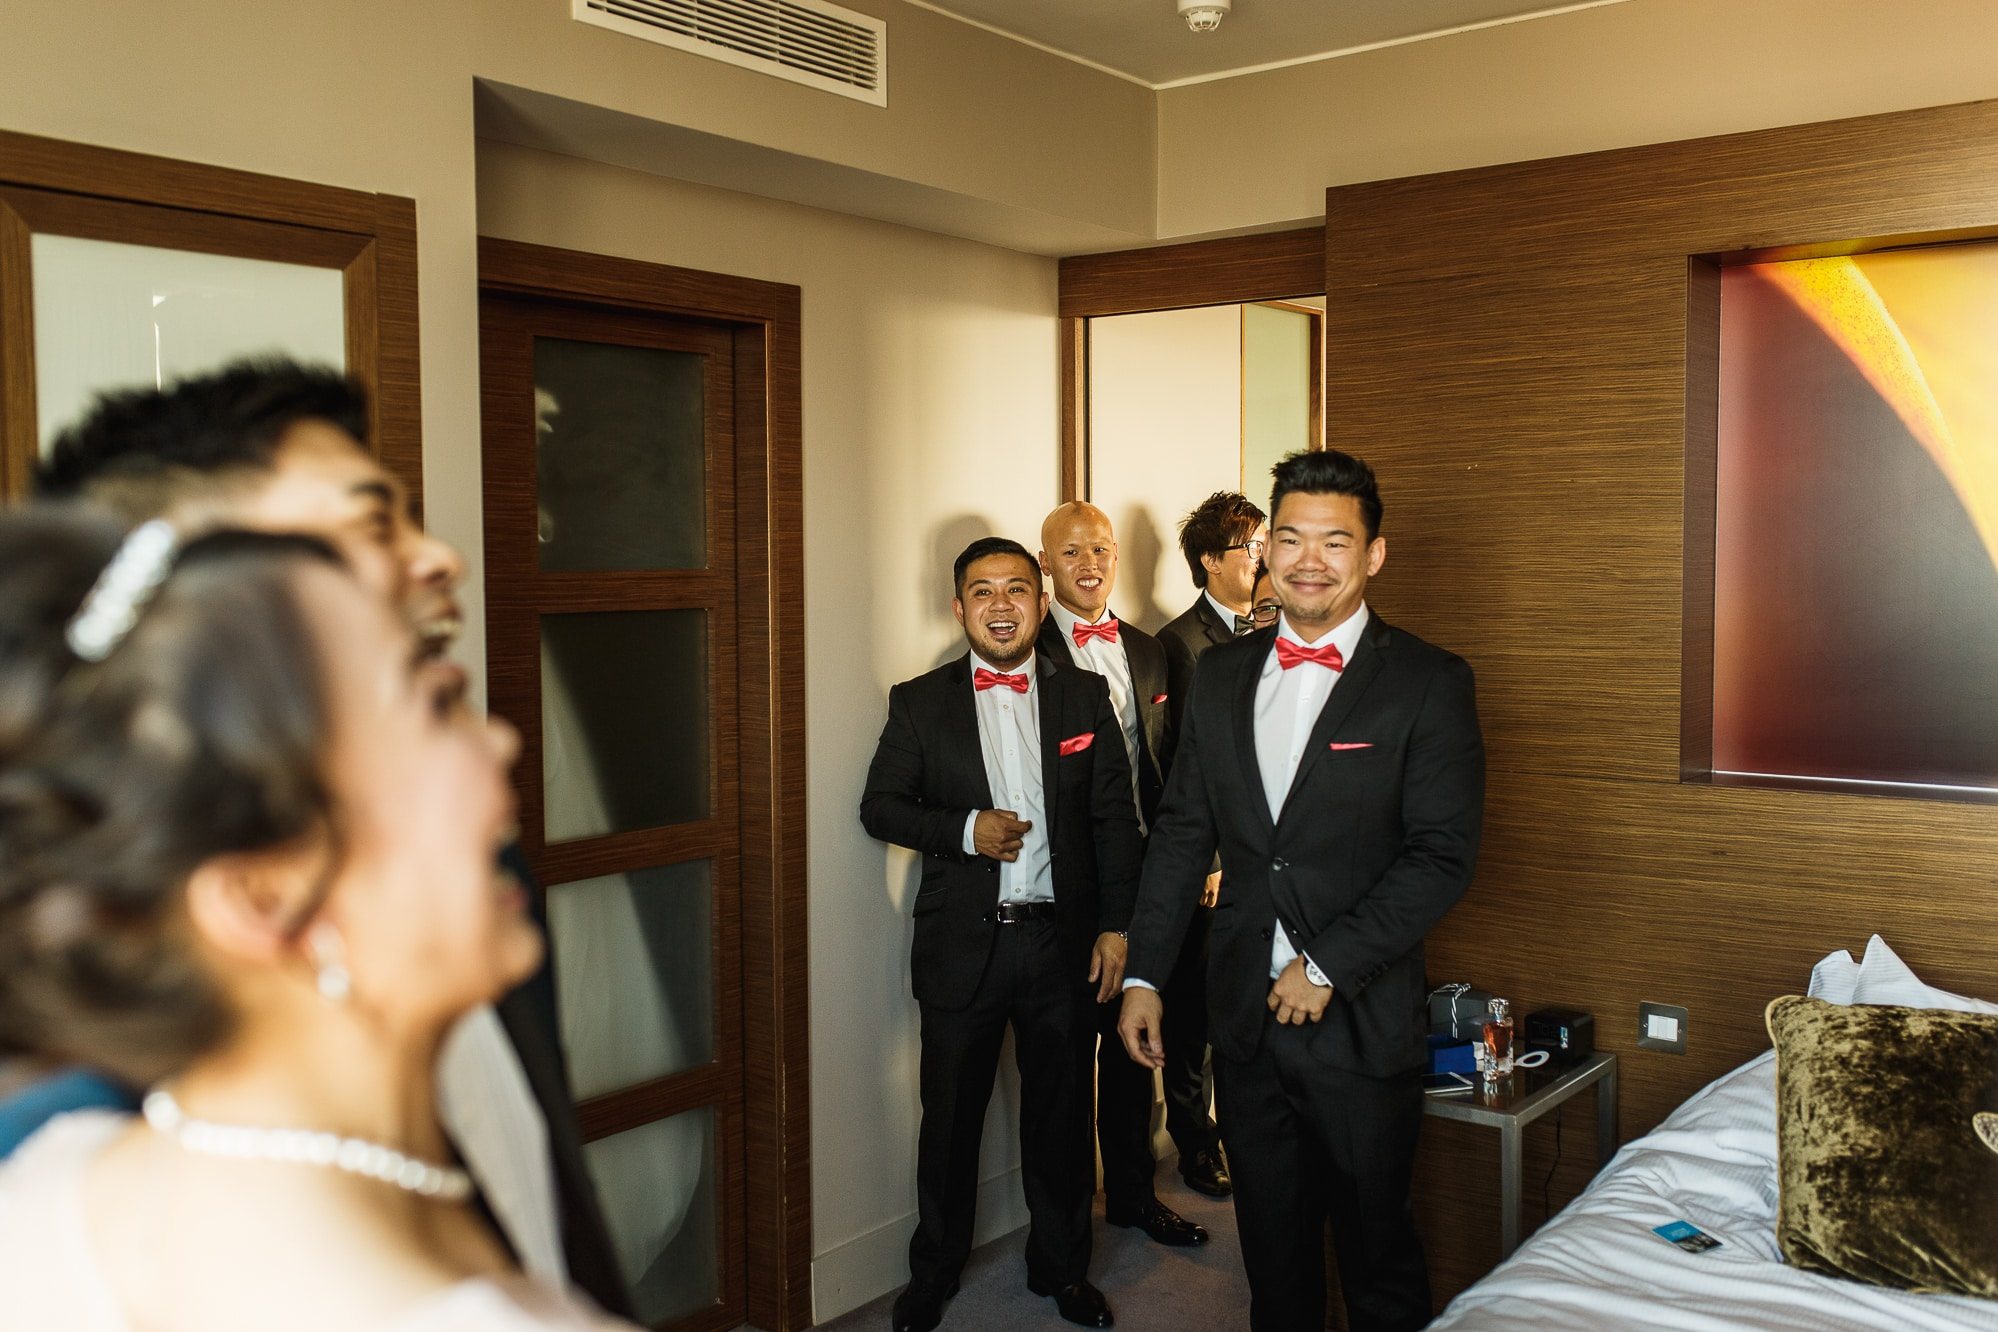 bride and groom laughing with ushers